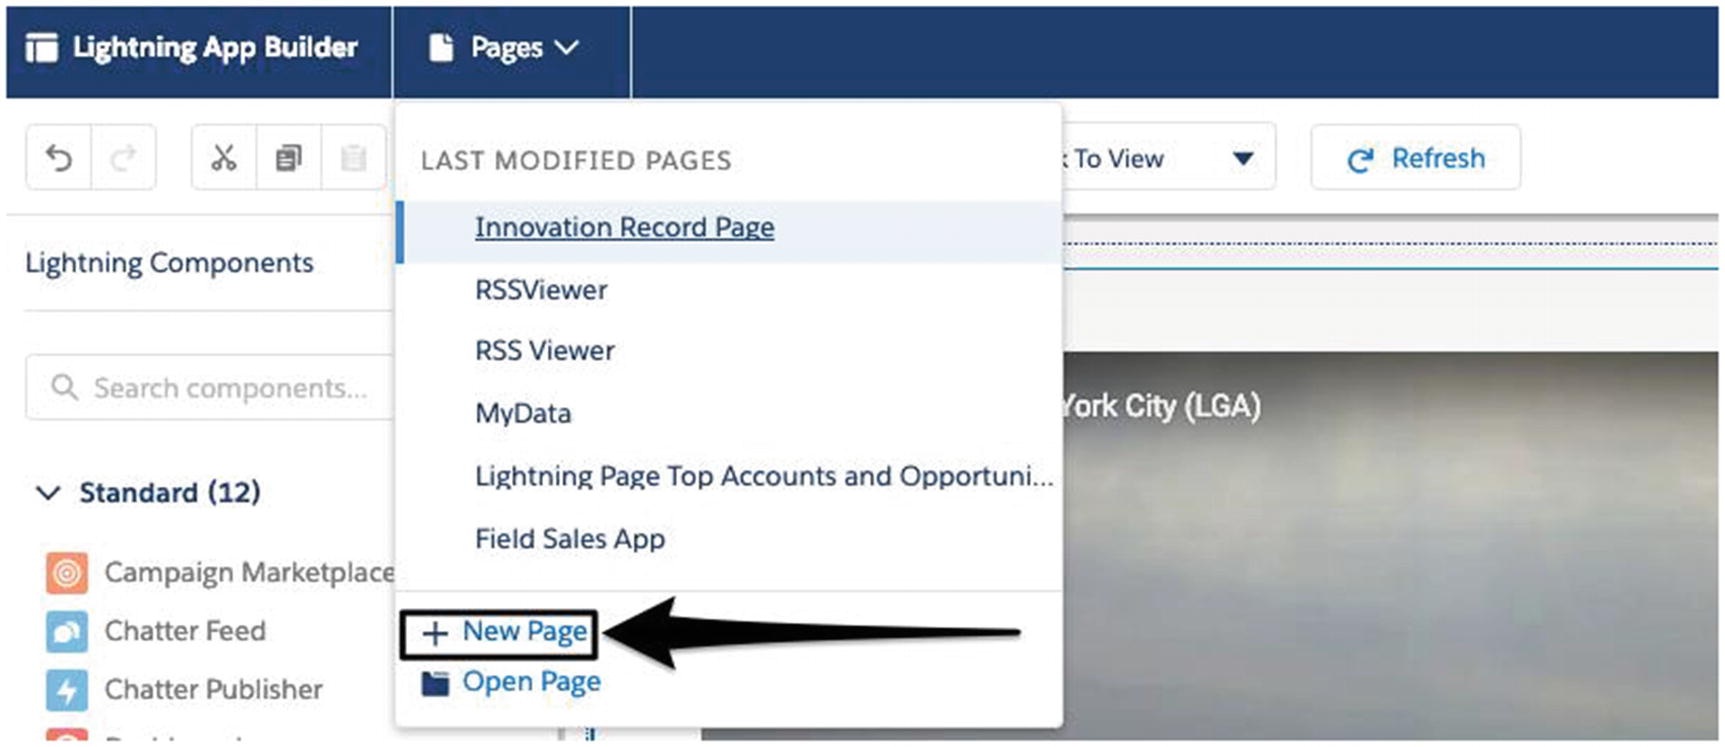 Using Lightning App Builder to Develop Declarative Apps | SpringerLink